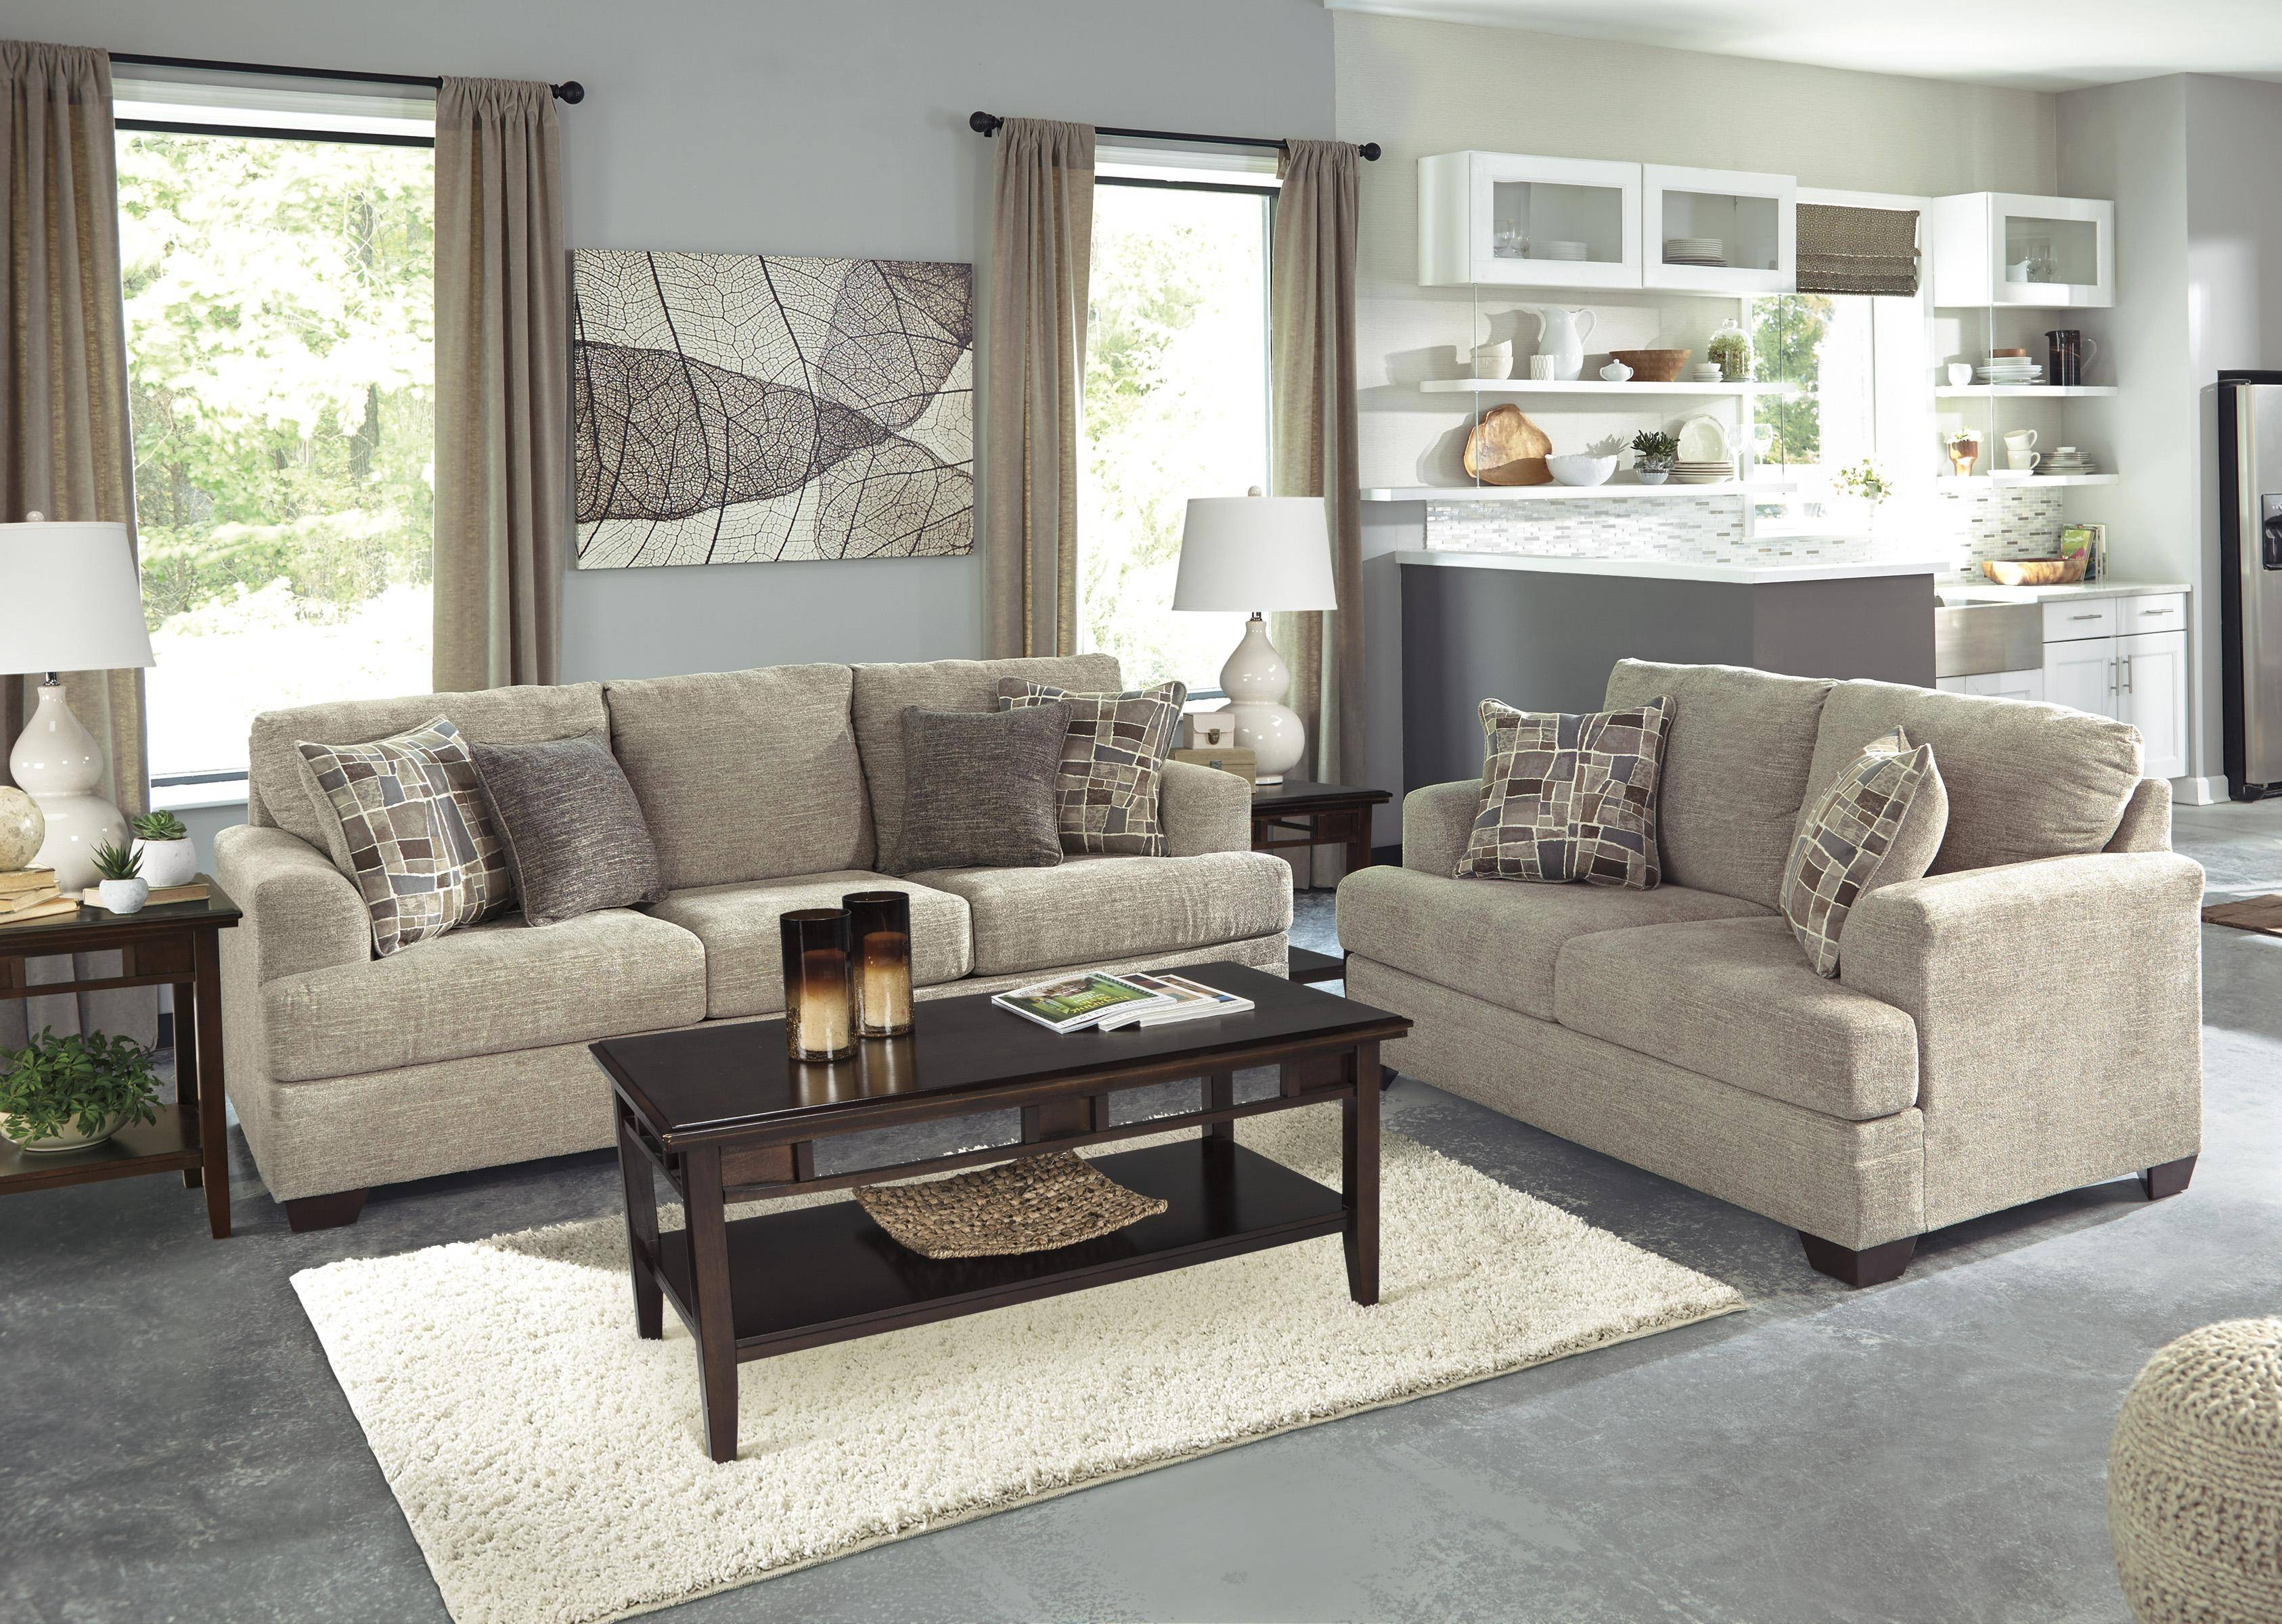 Ashley Barrish 2 Piece Living Room Set In Sisal 48501 38 35 with regard to Living Room Sets Online